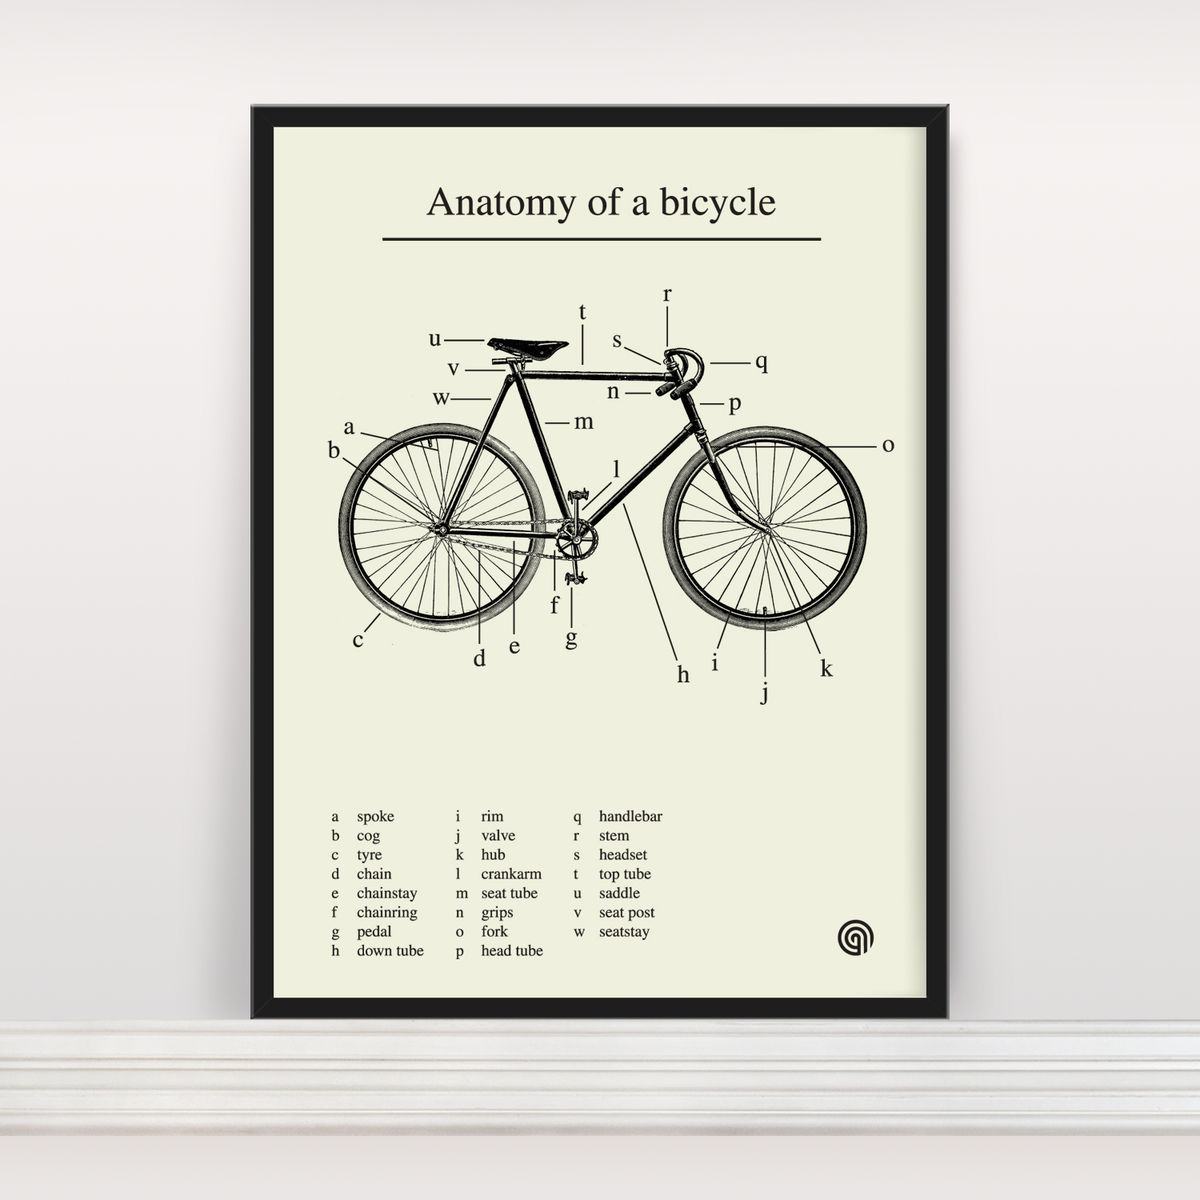 Bicycle anatomy diagram